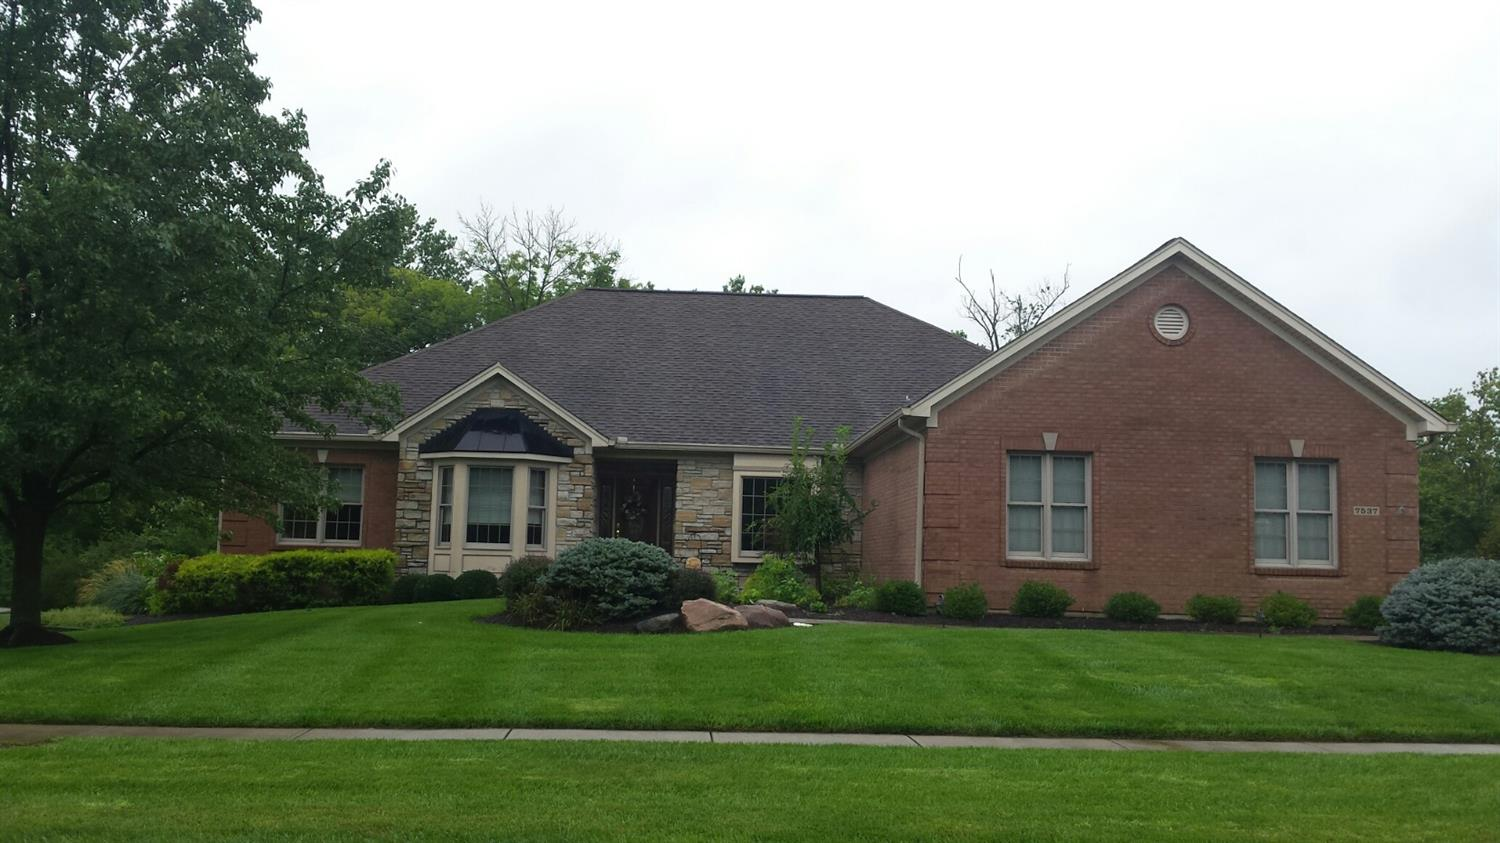 Photo 1 for 7537 Nordan Dr West Chester - East, OH 45069